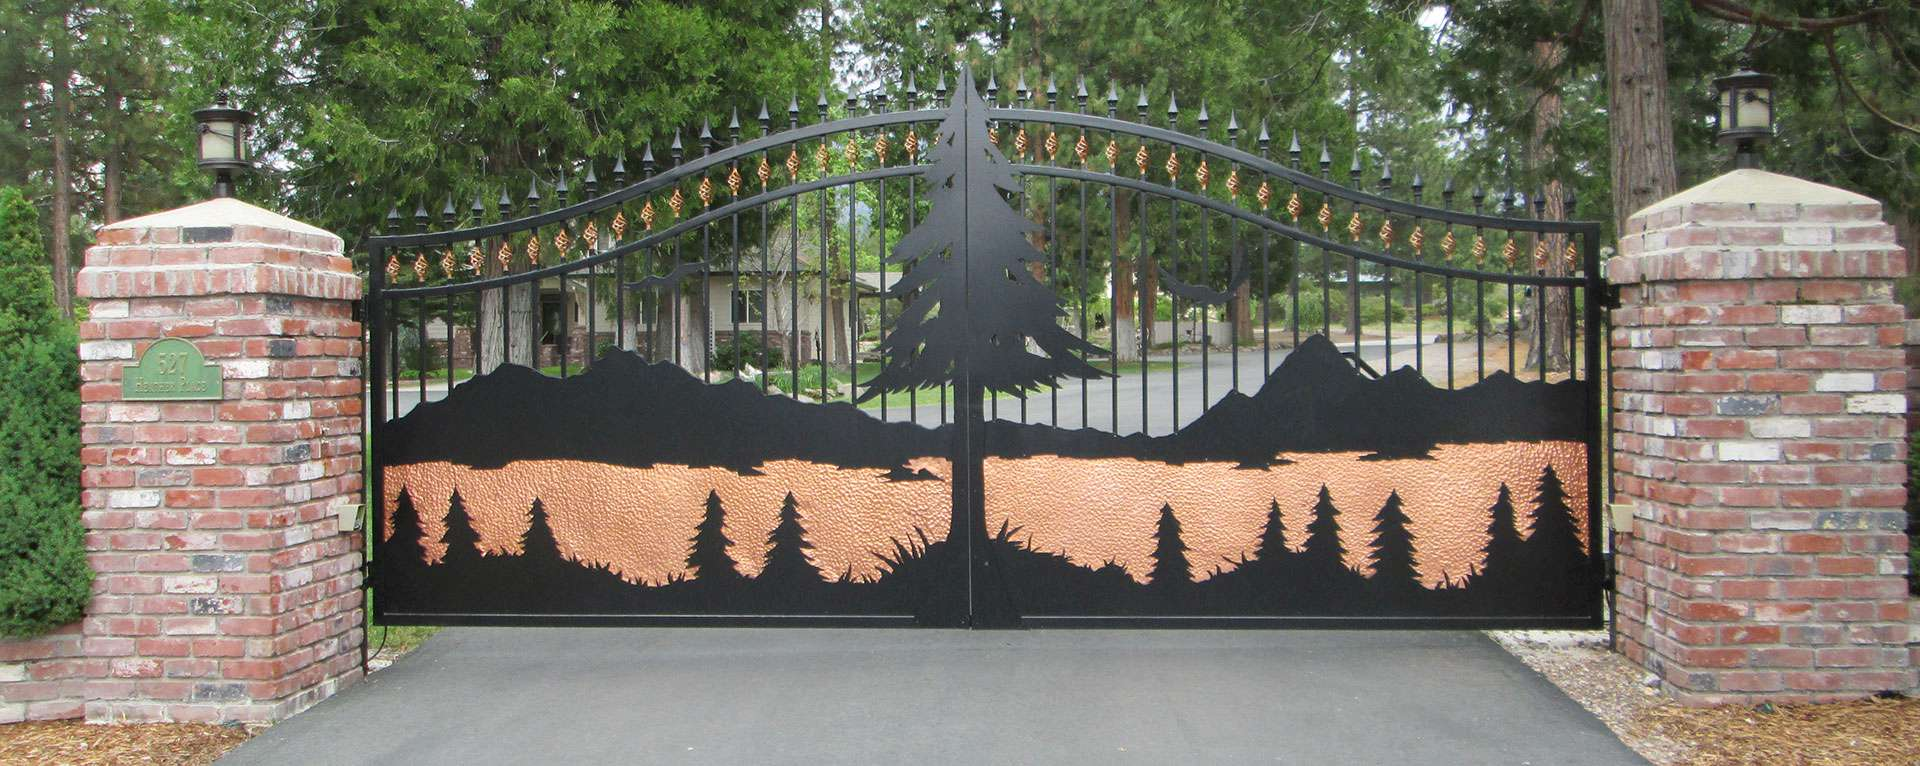 Make Your Home an Estate with a Signature Gate! | Signature Gates & Controls